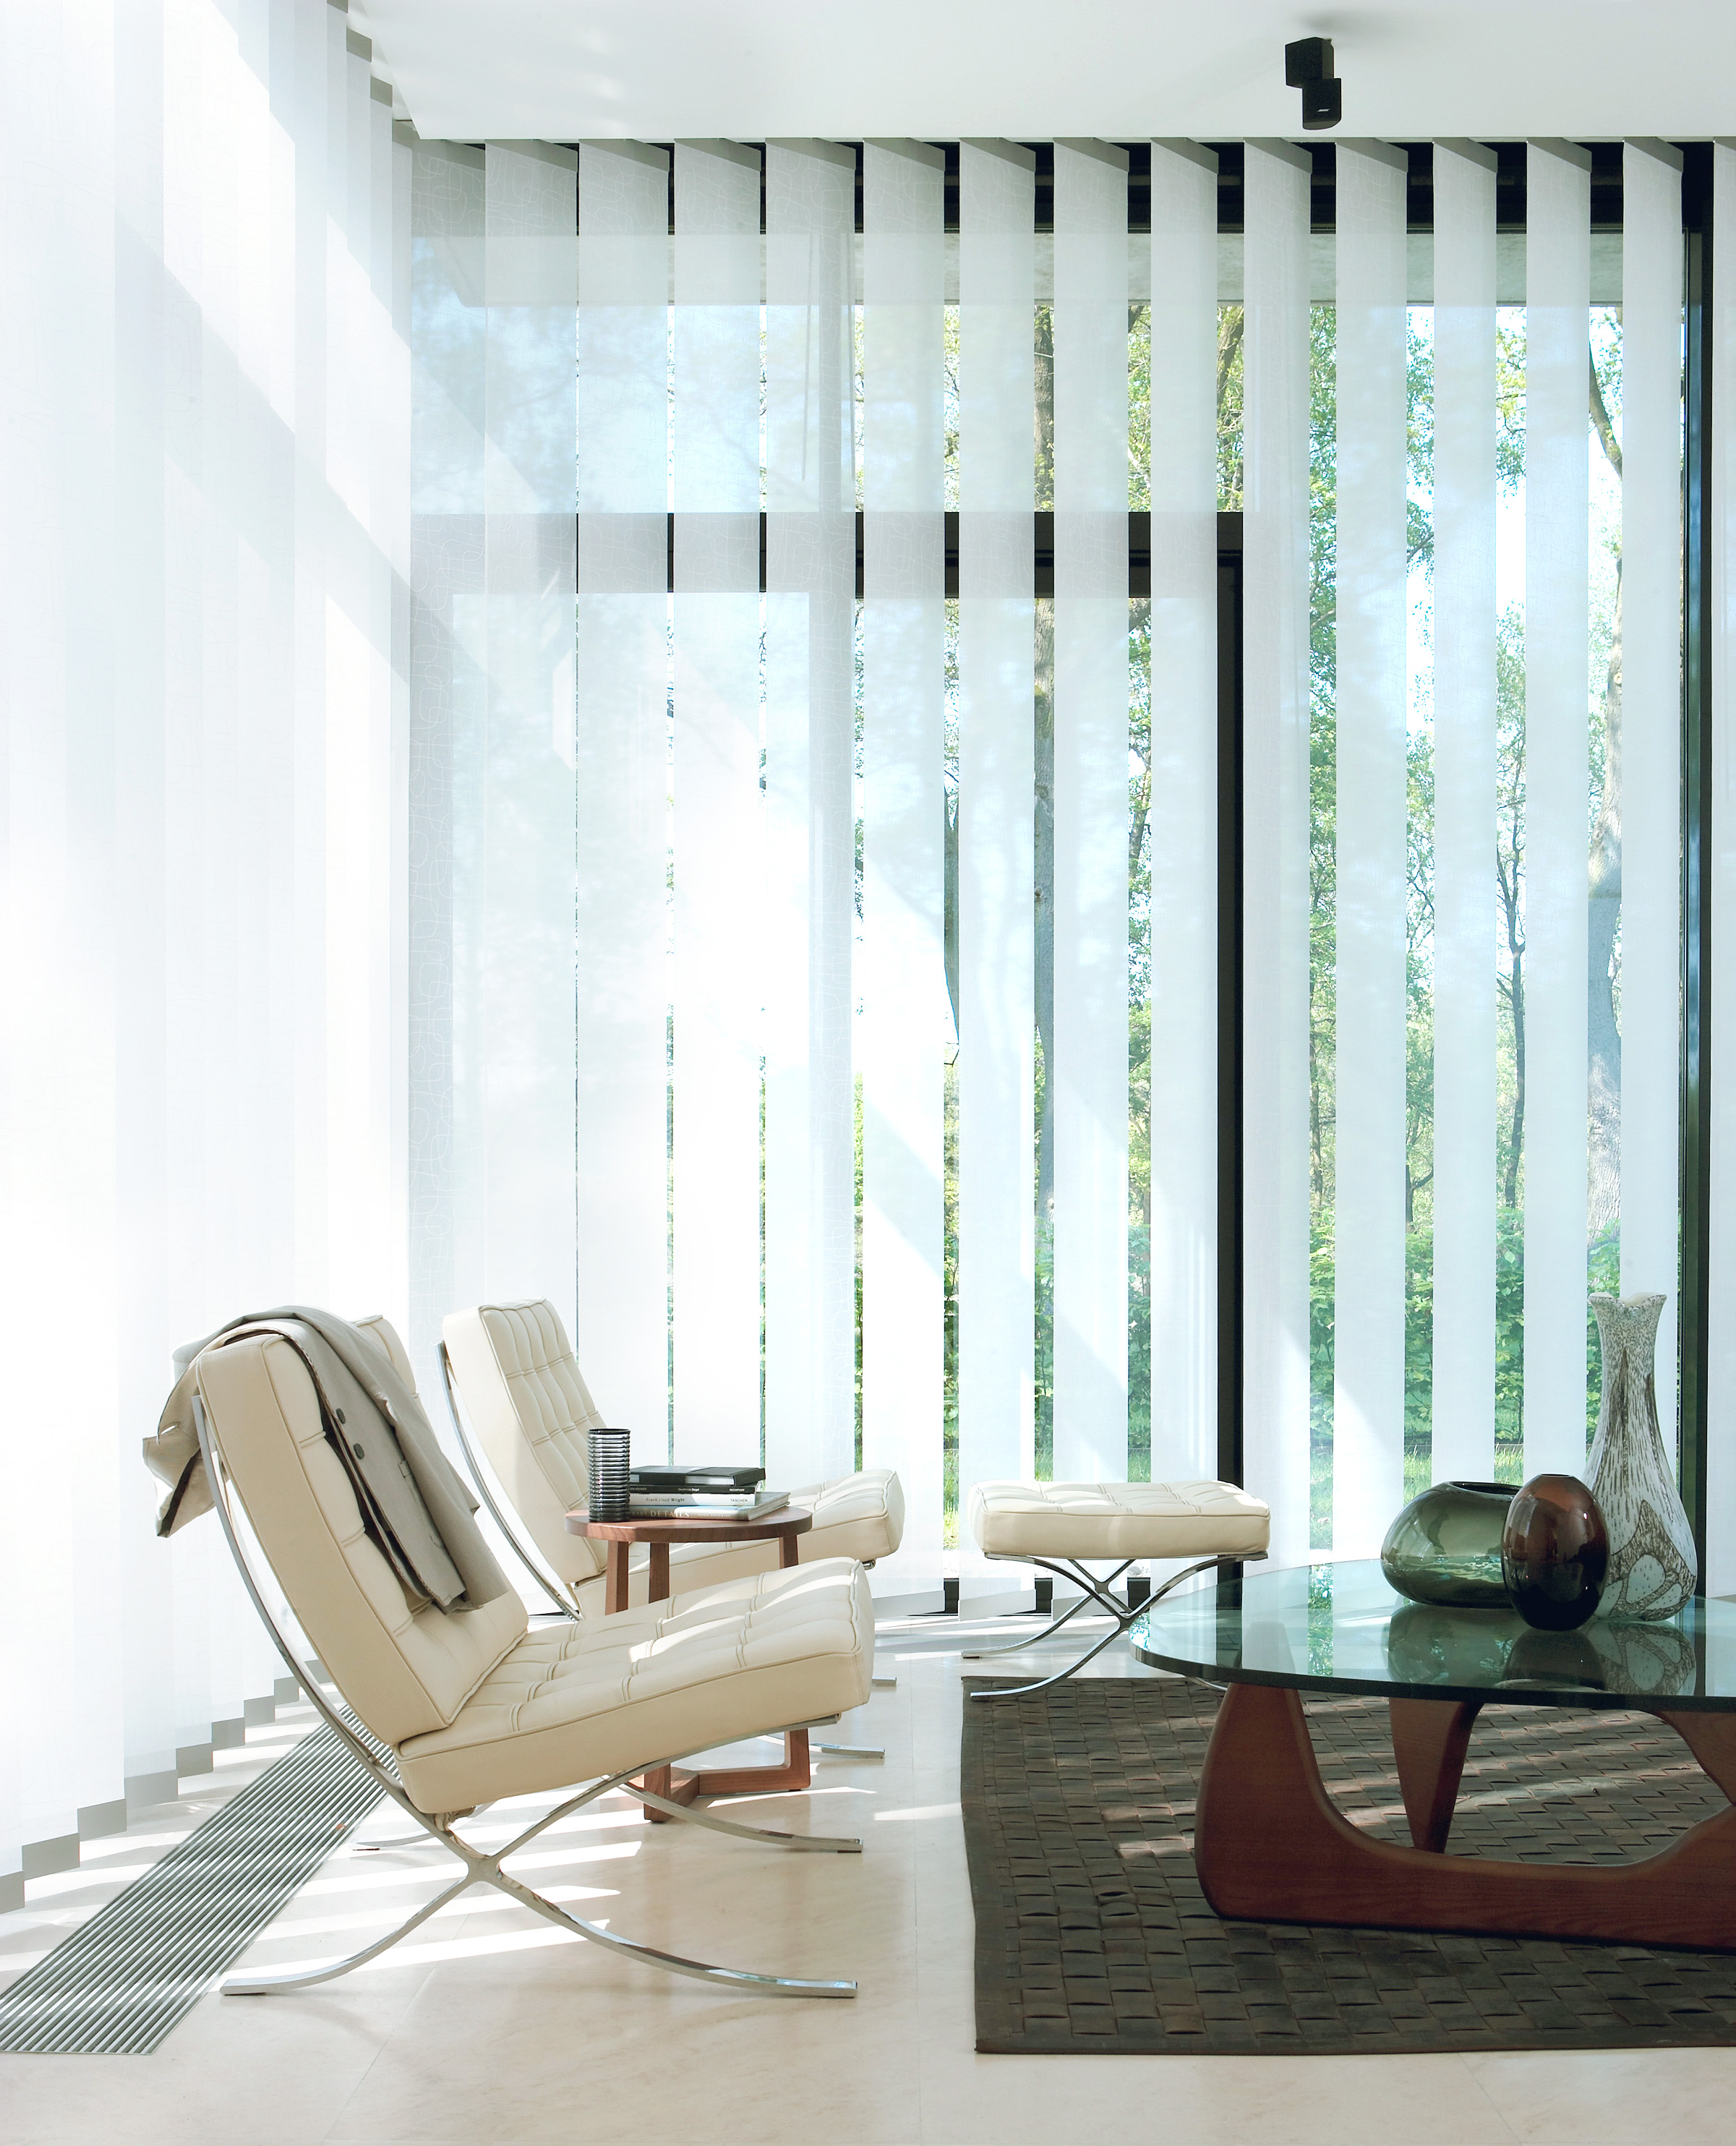 size quality for nextday doors of manufacturer panel made just the japanese your measure direct full next screens shoji available curtains to delivery like cover day or items s blinds windows from are and